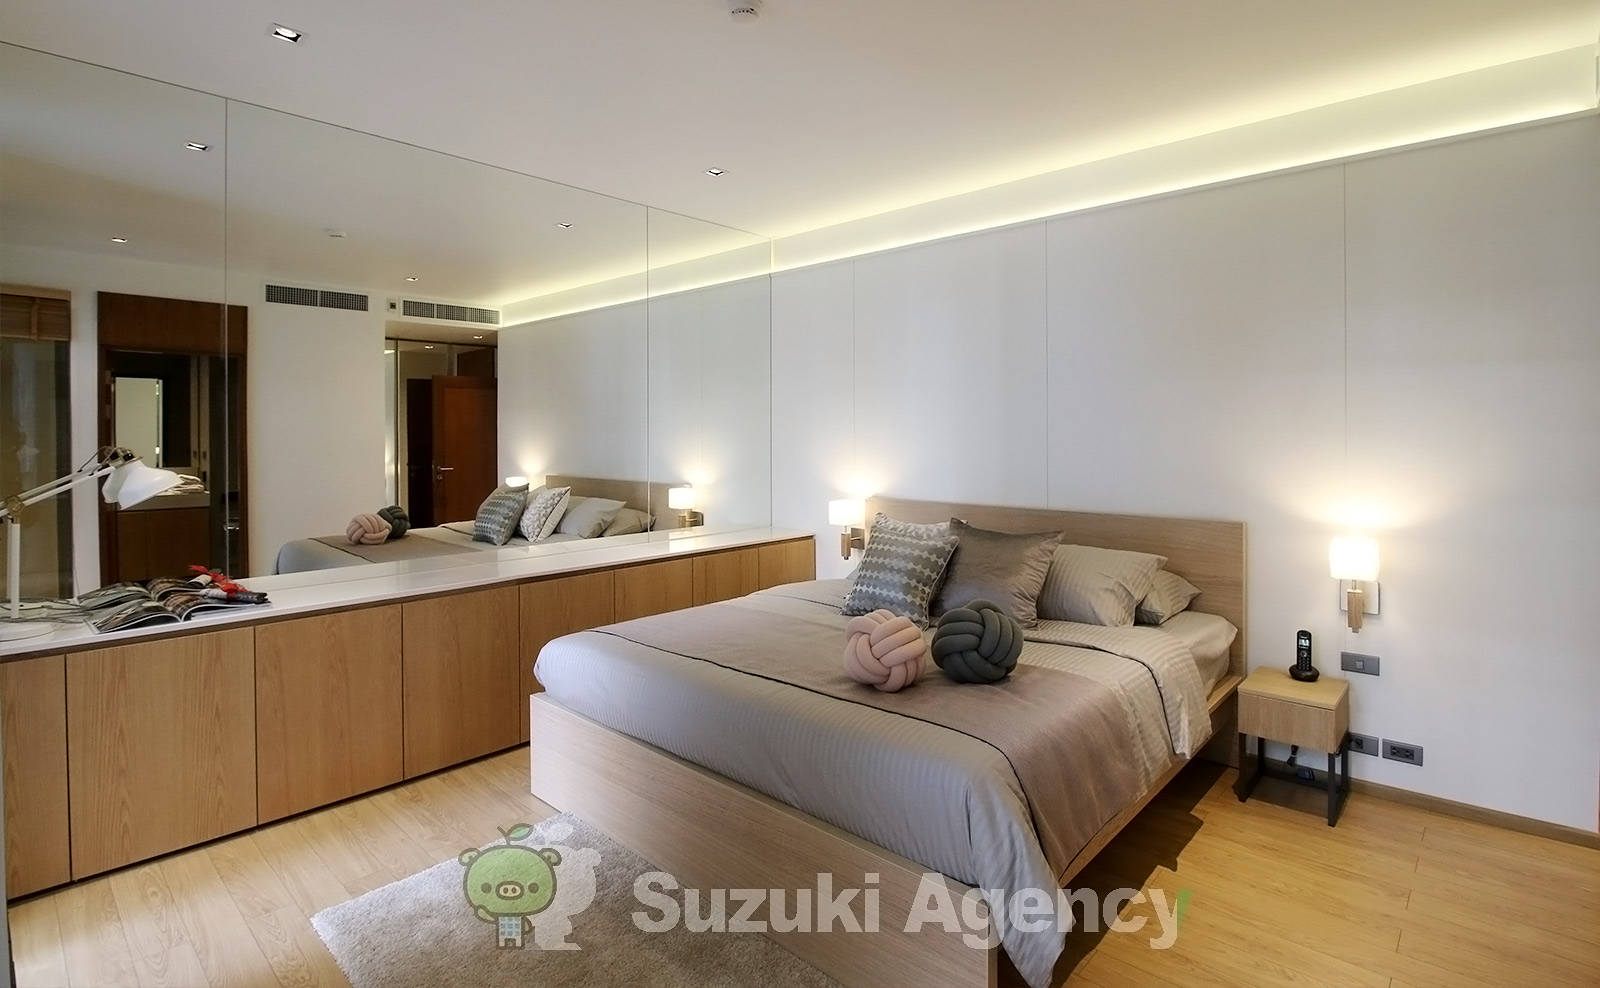 Jitimont Residence:2Bed Room Photos No.7